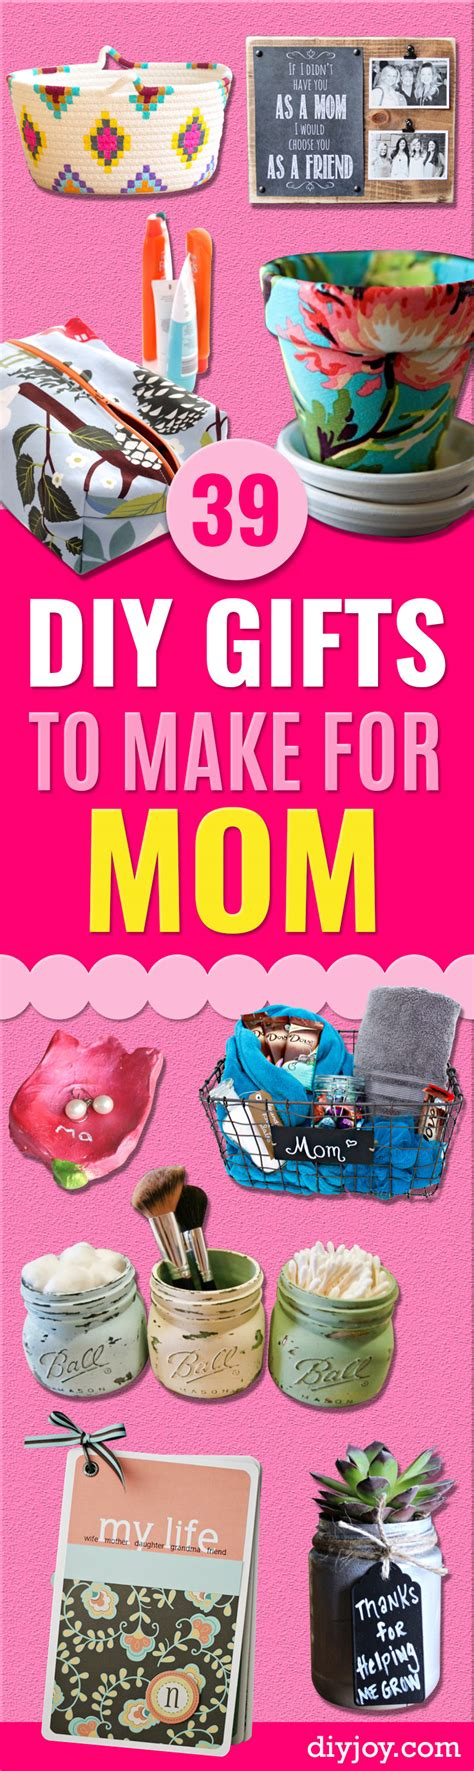 39 creative diy gifts to make for mom diy joy